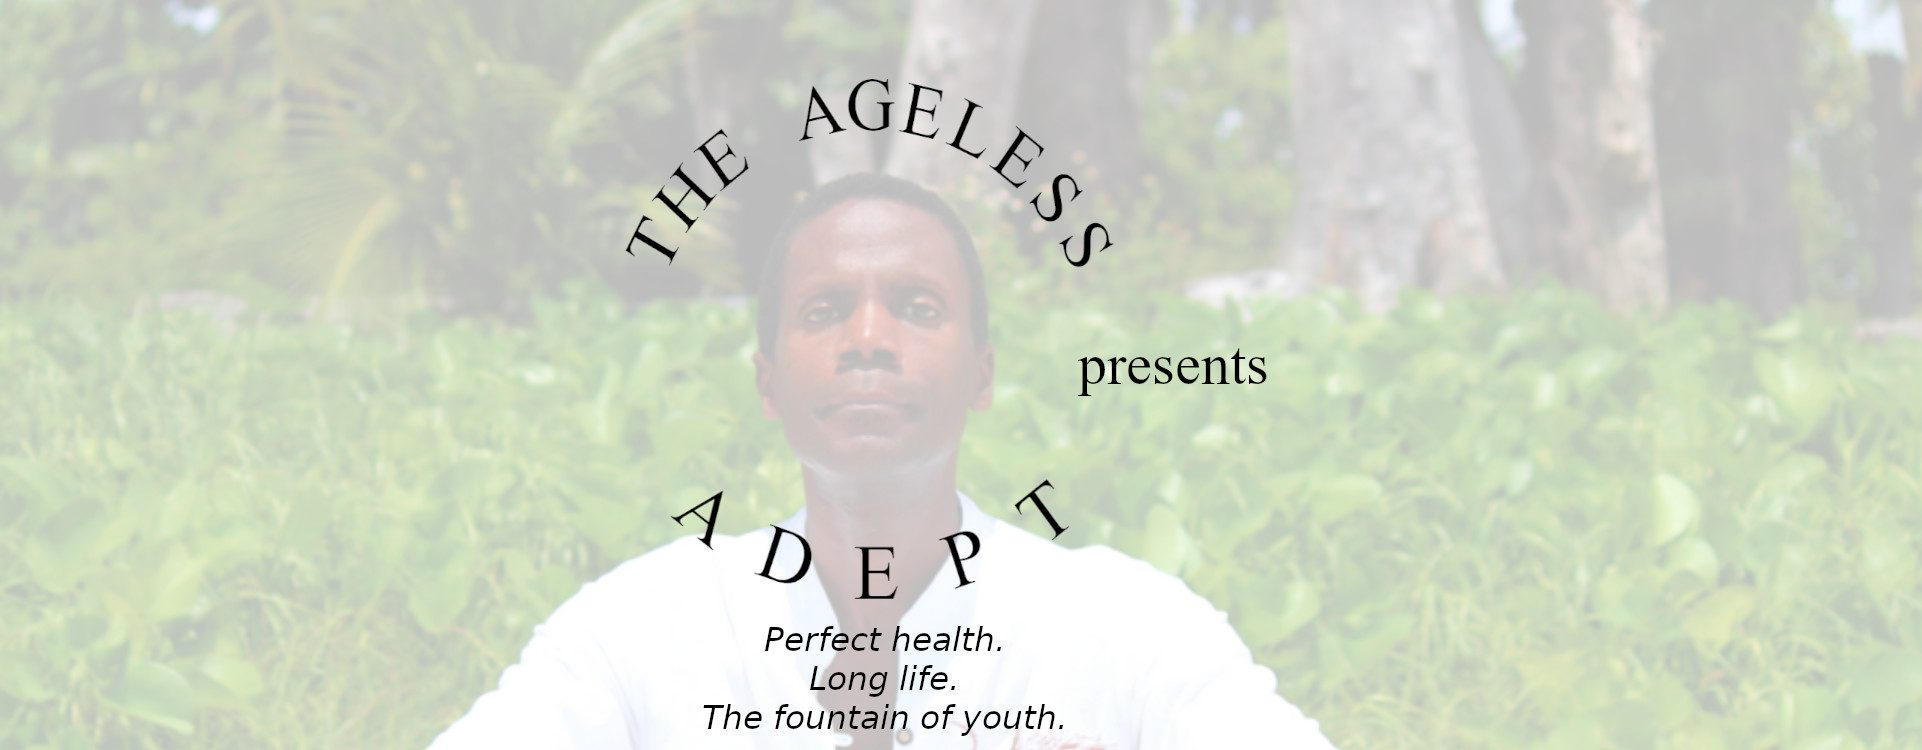 The Ageless Adept™